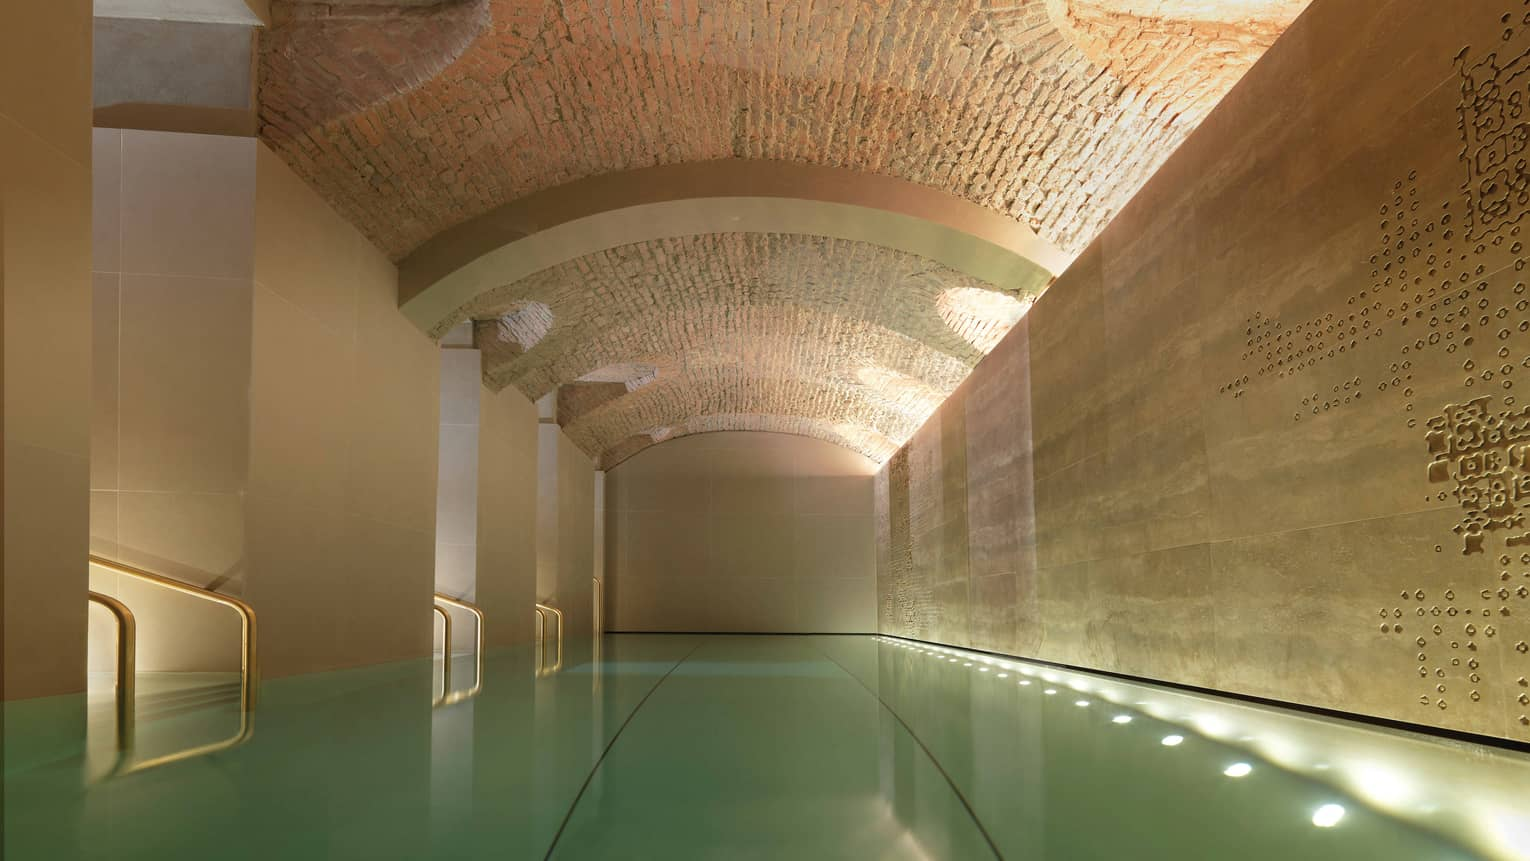 Indoor lap swimming pool with gold railings under curved stone ceiling